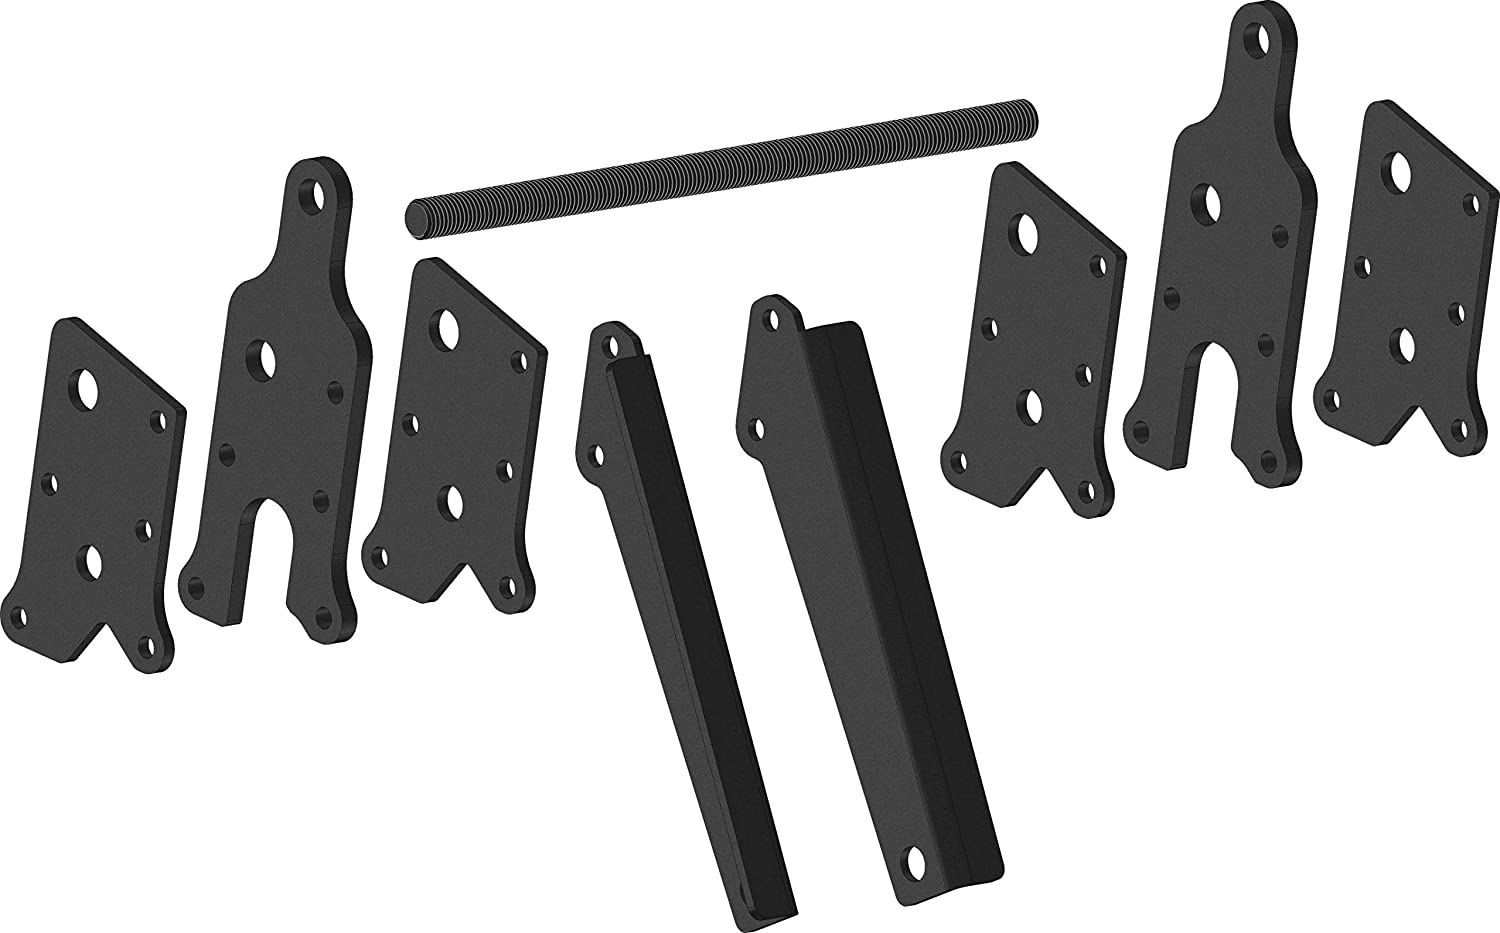 Kfi 10-5765 Kfi Utv Plow Lift Kit 6